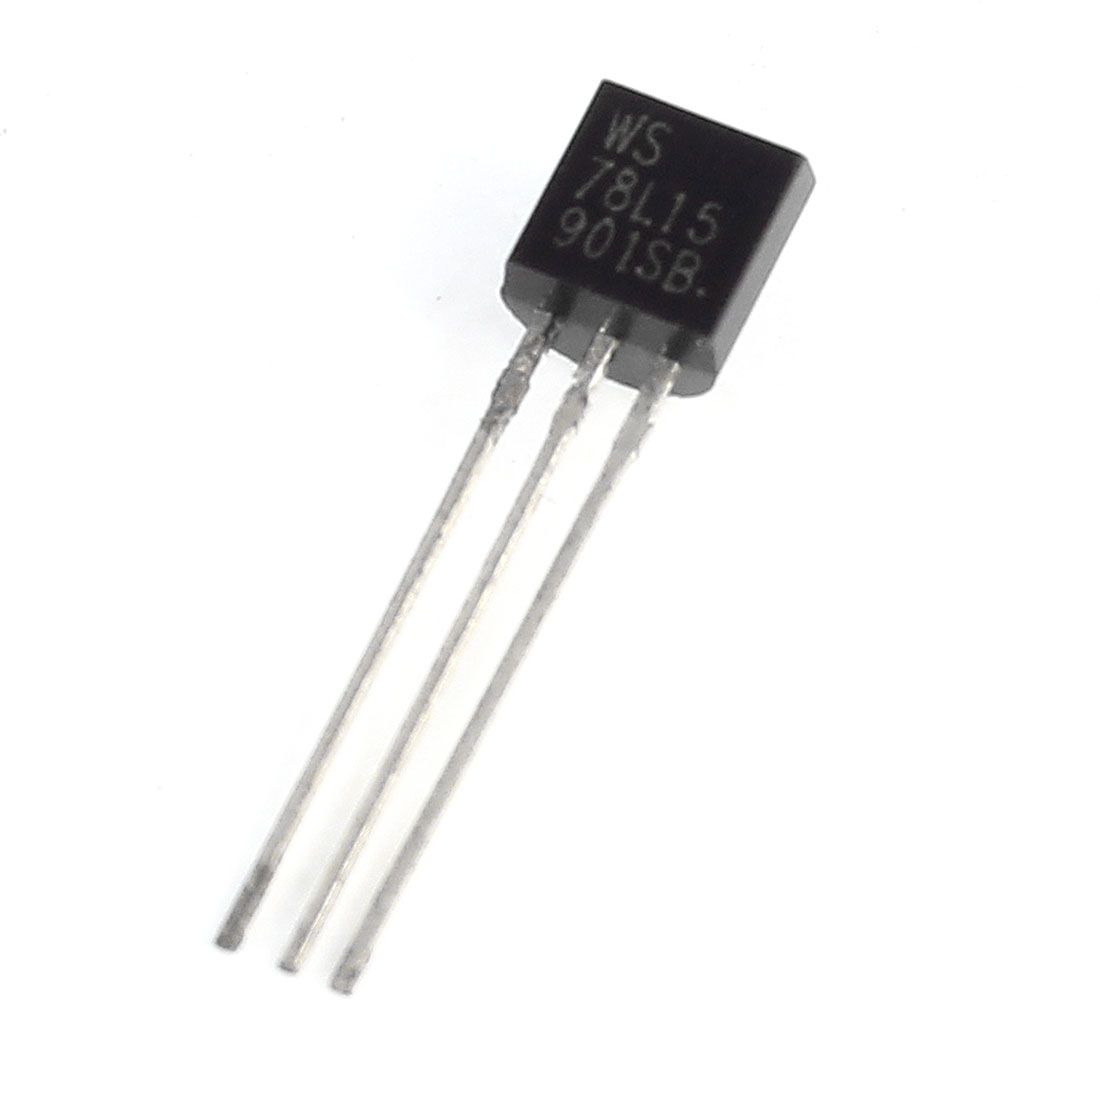 78L15 100mA 35V 3Pin Terminals TO-92 Package Positive Voltage Regulator